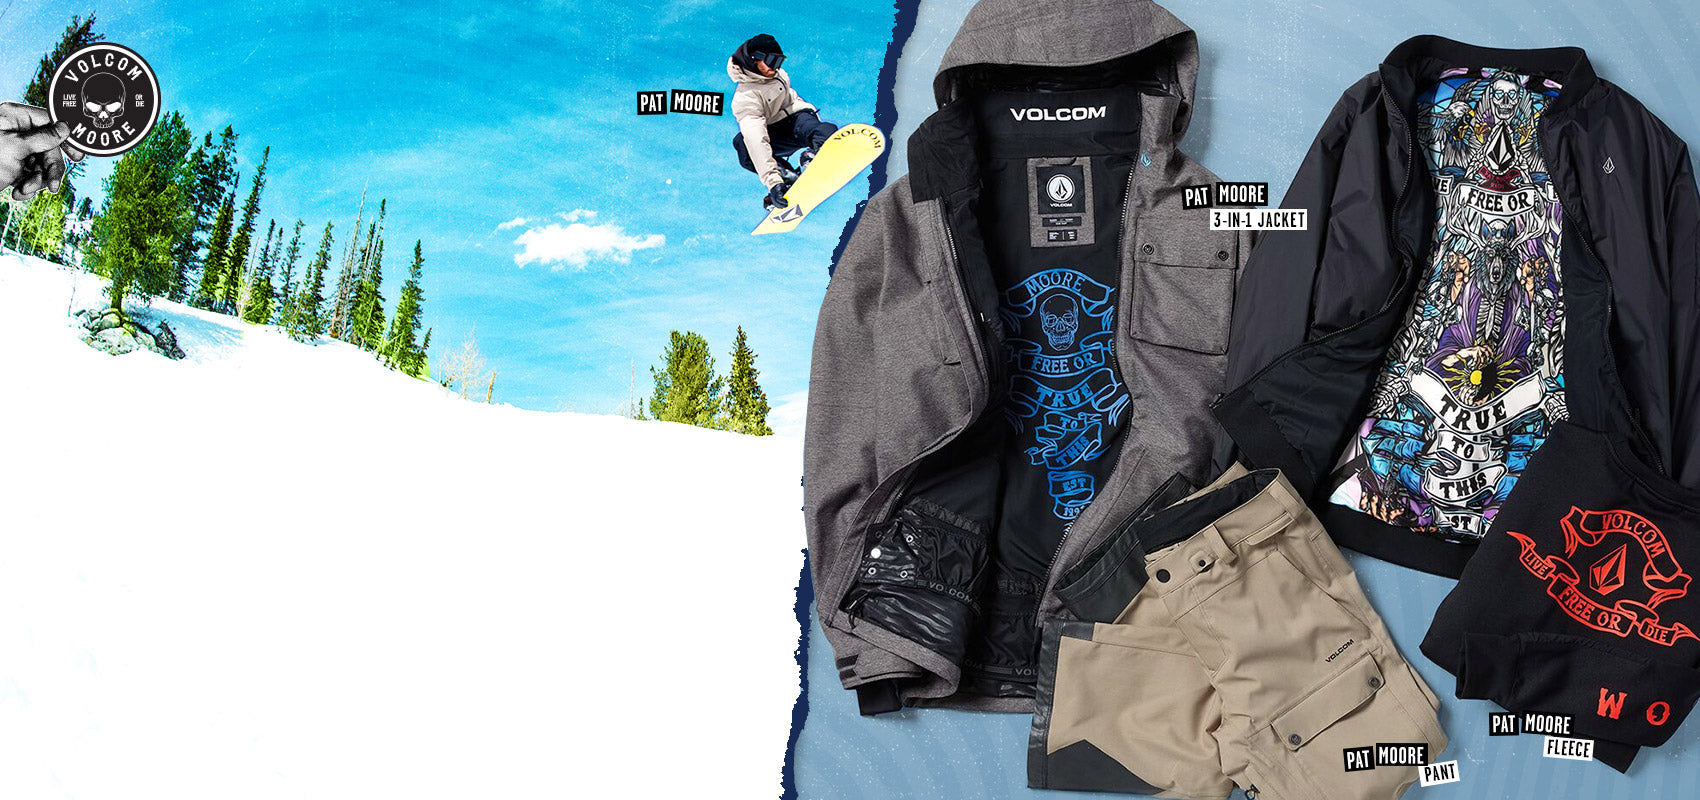 Pat Moore Volcom Outerwear